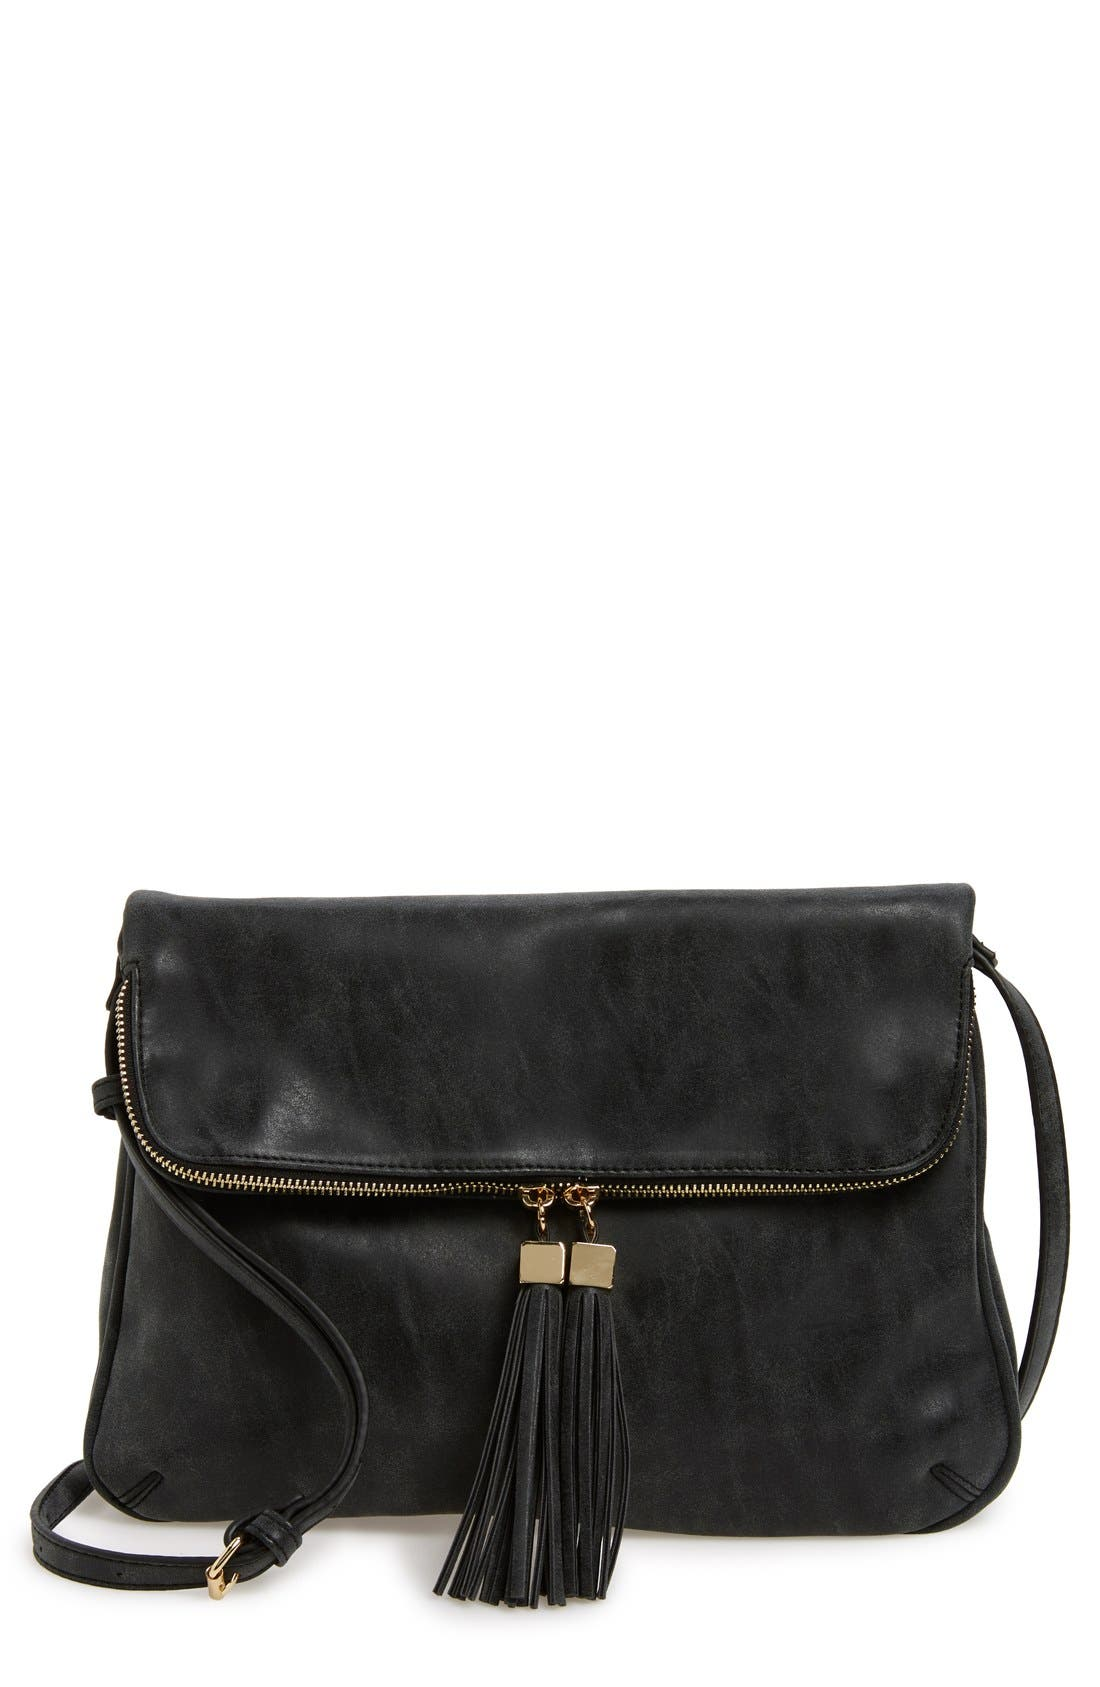 Alternate Image 1 Selected - Emperia 'Layla' Faux Leather Tassel Flap Crossbody Bag